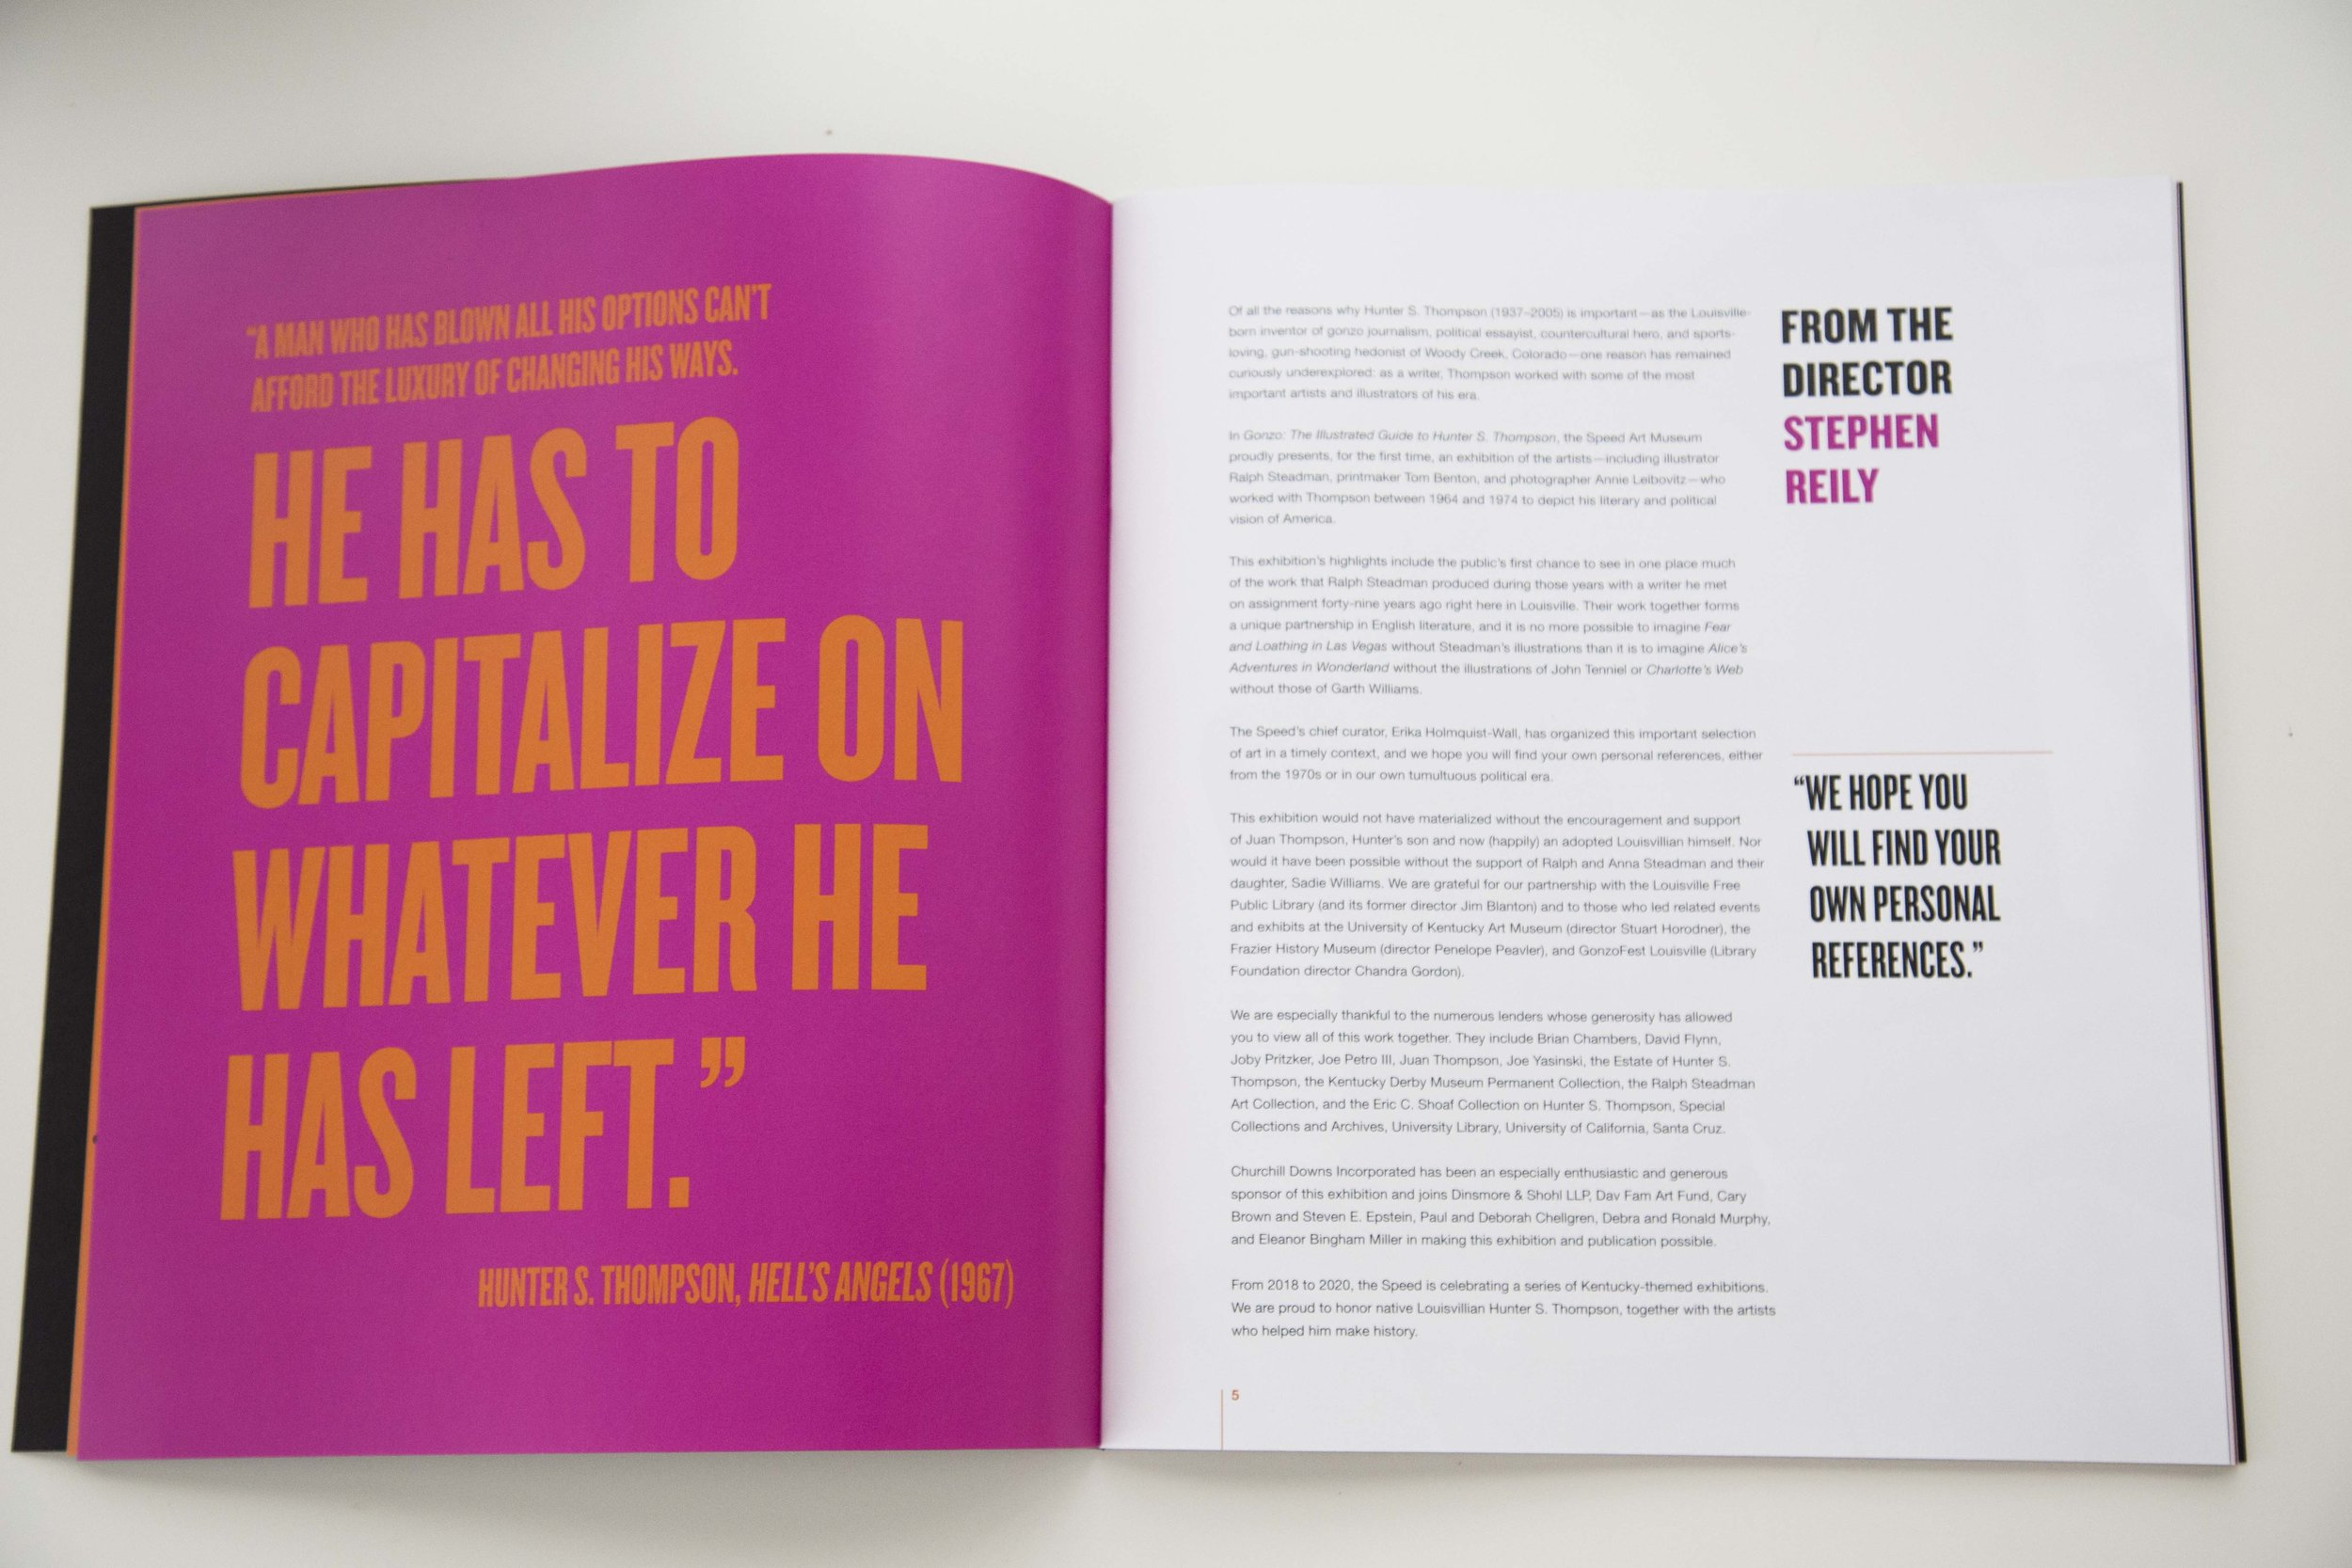 The large quotes and neon colors boldly interrupt the book.